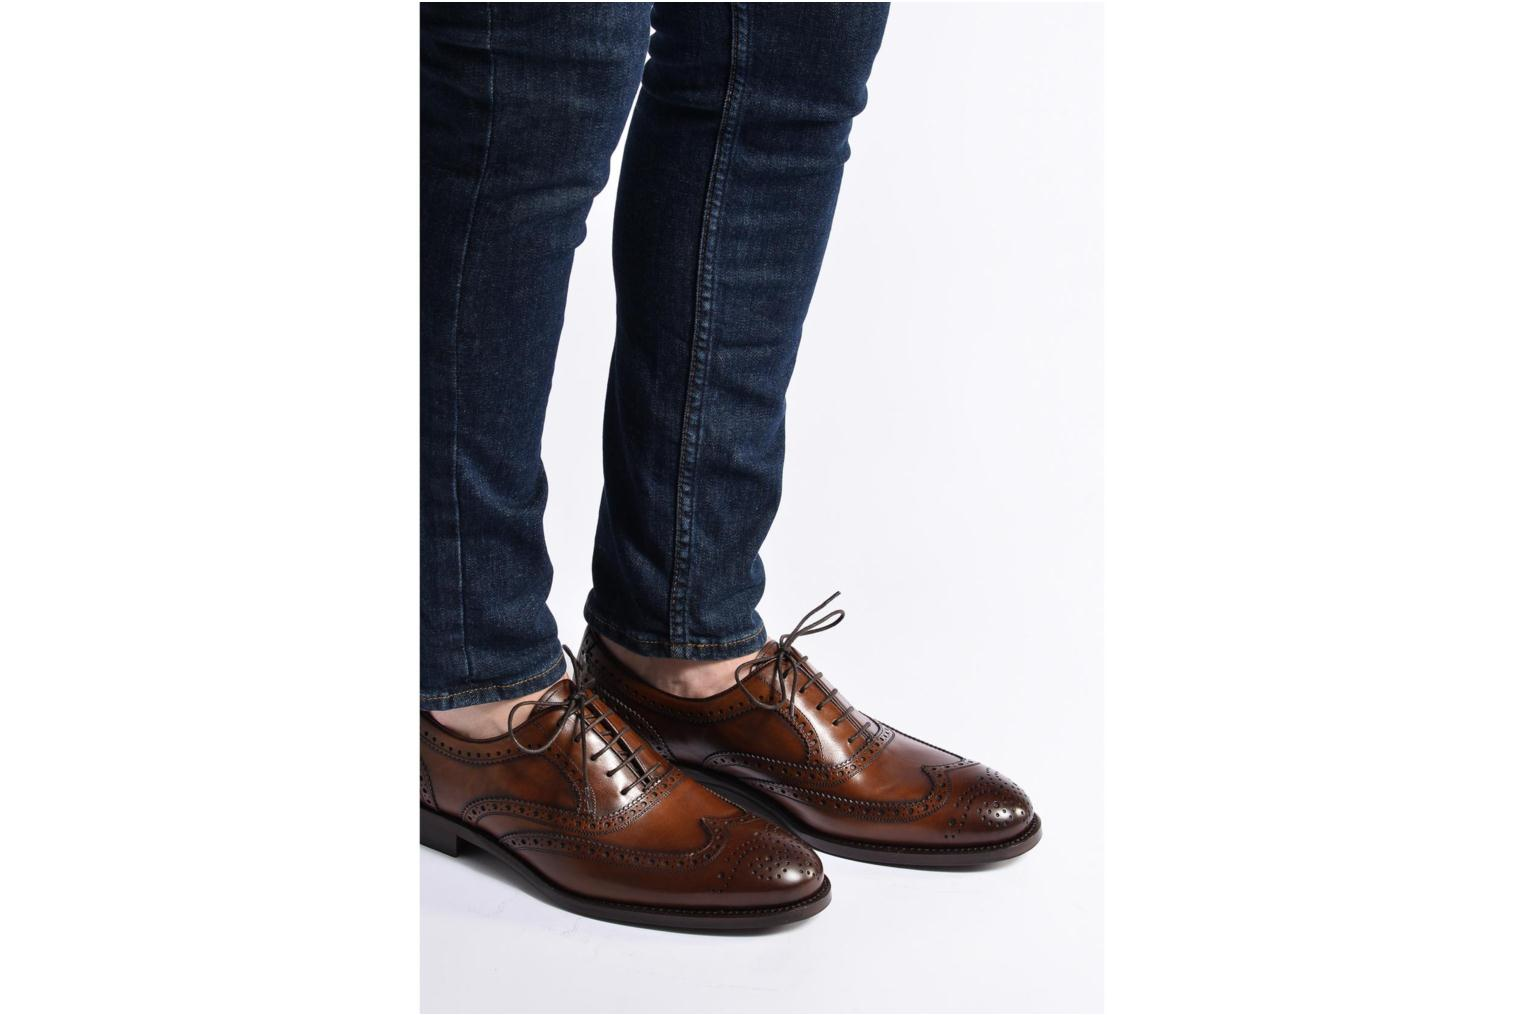 Chaussures à lacets Marvin&Co Luxe Waster - Cousu Goodyear Marron vue bas / vue portée sac